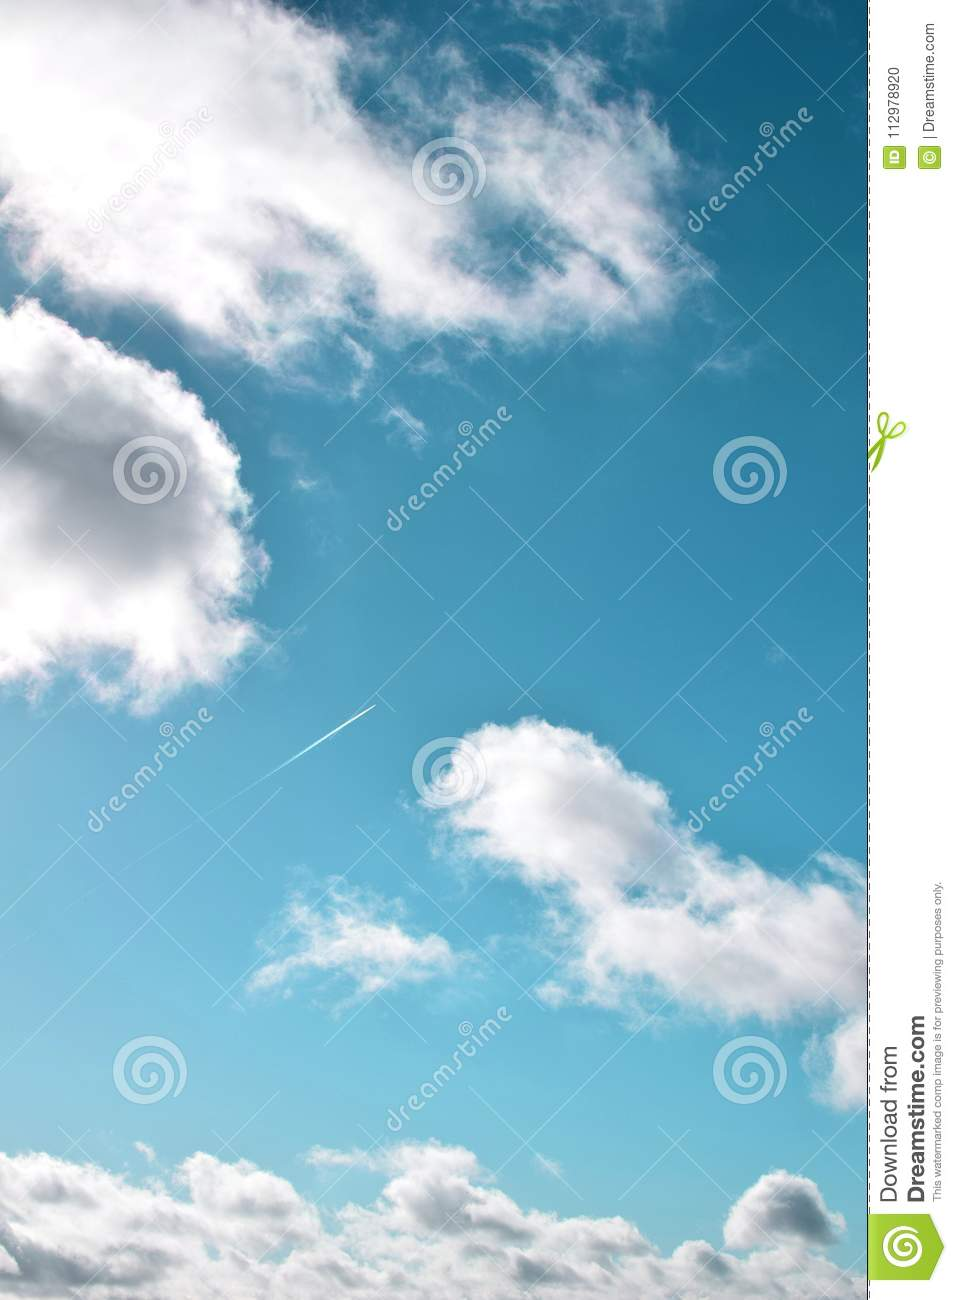 A plane in a cloudy and turquoise sky